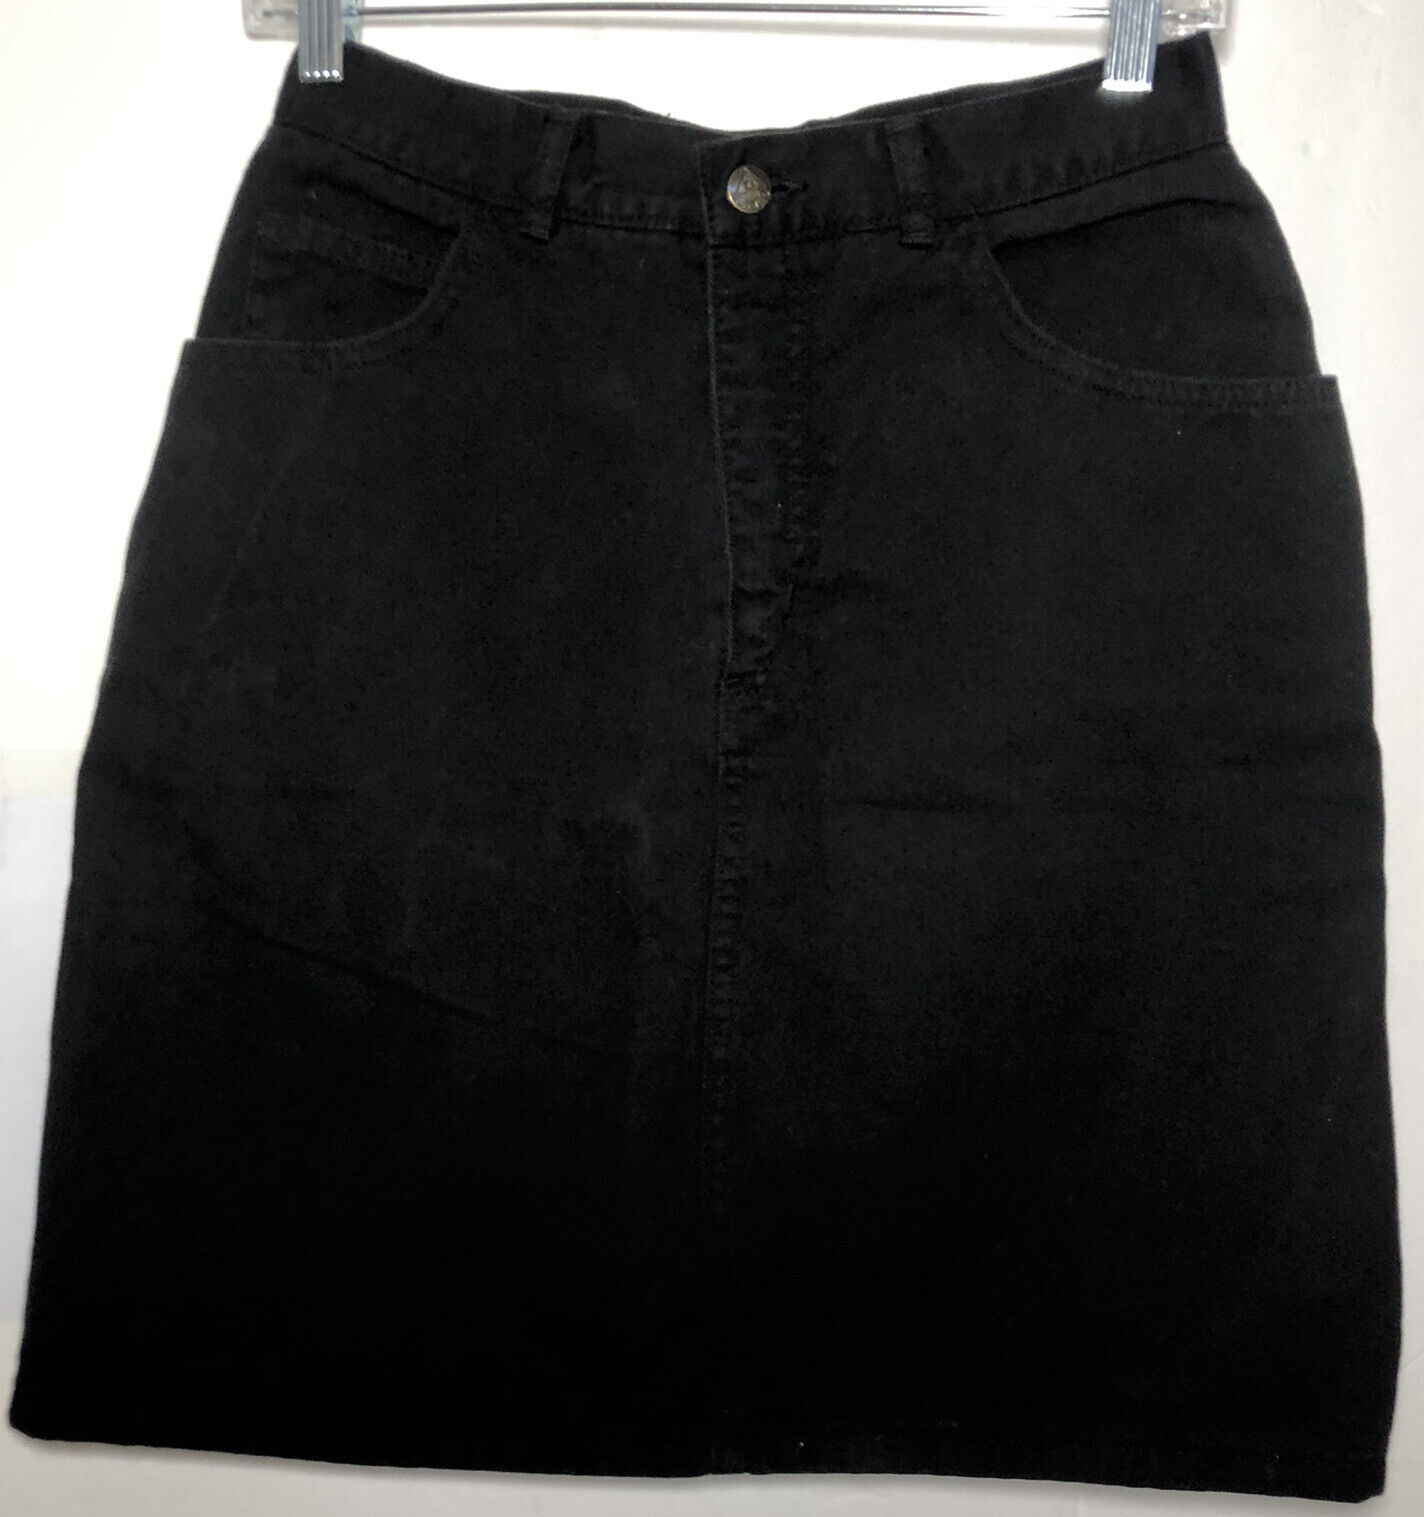 VTG Guess by Marciano Black Denim Skirt High Waist Size 32 Jeans Guess Logo USA